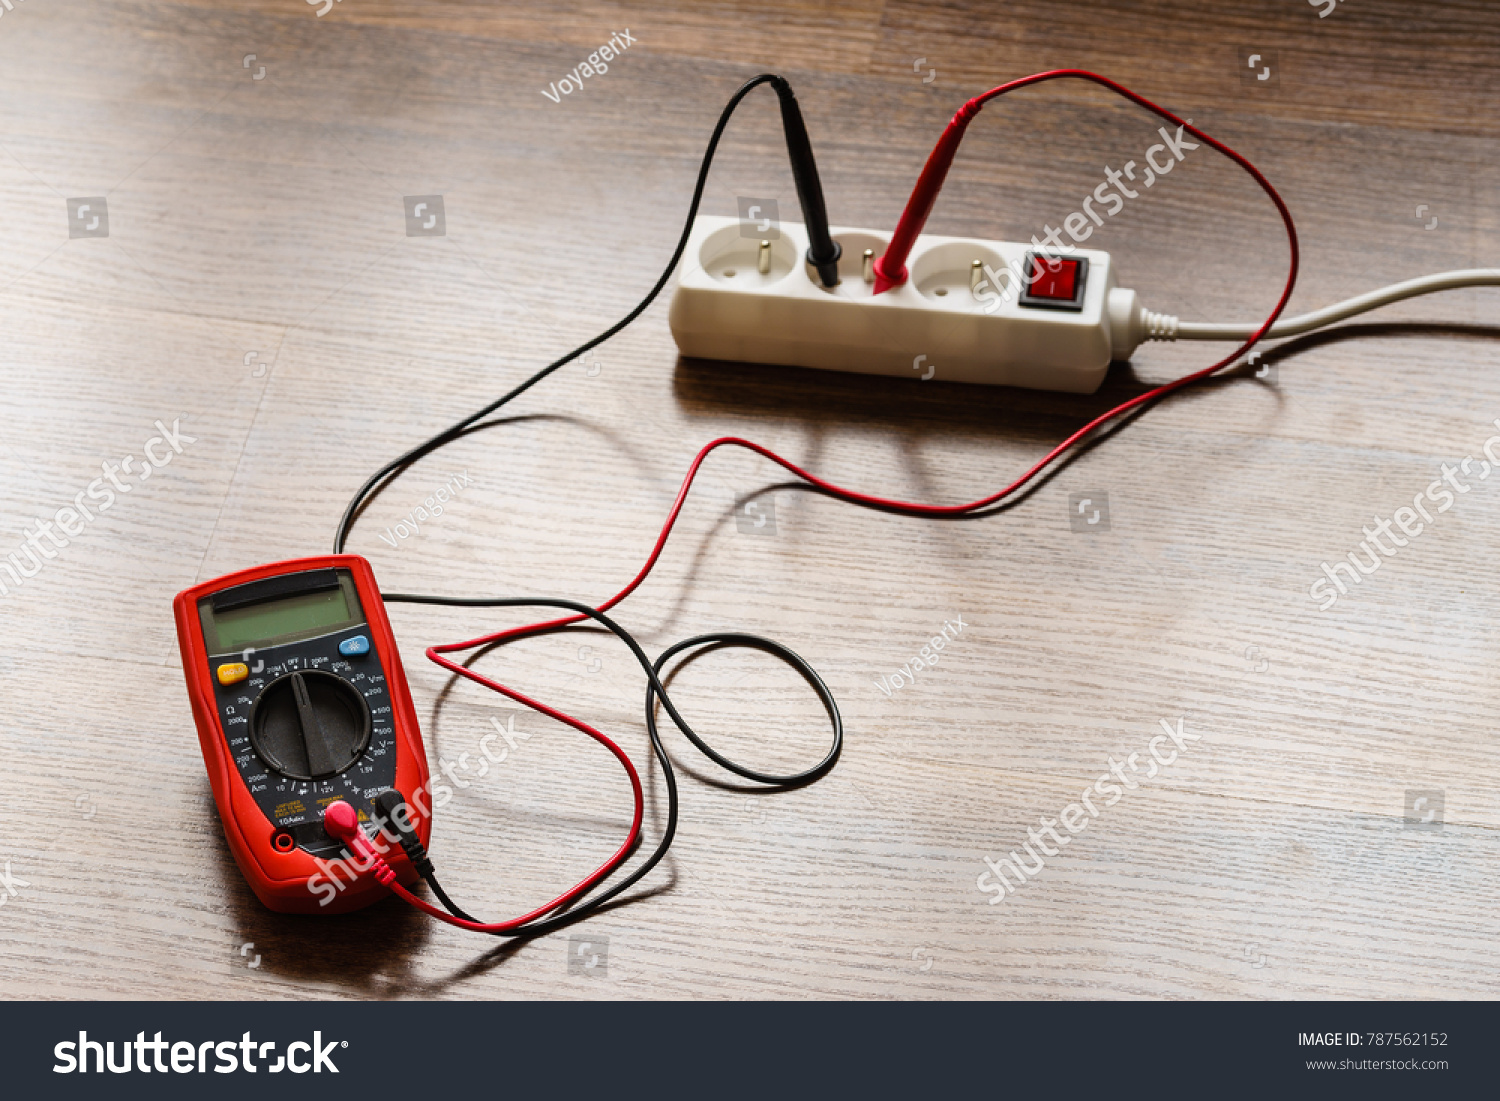 Measurement Voltage Electrical Socket Extension Cord Stock Photo Wiring A Of In With Multimeter On Wooden Floor Background